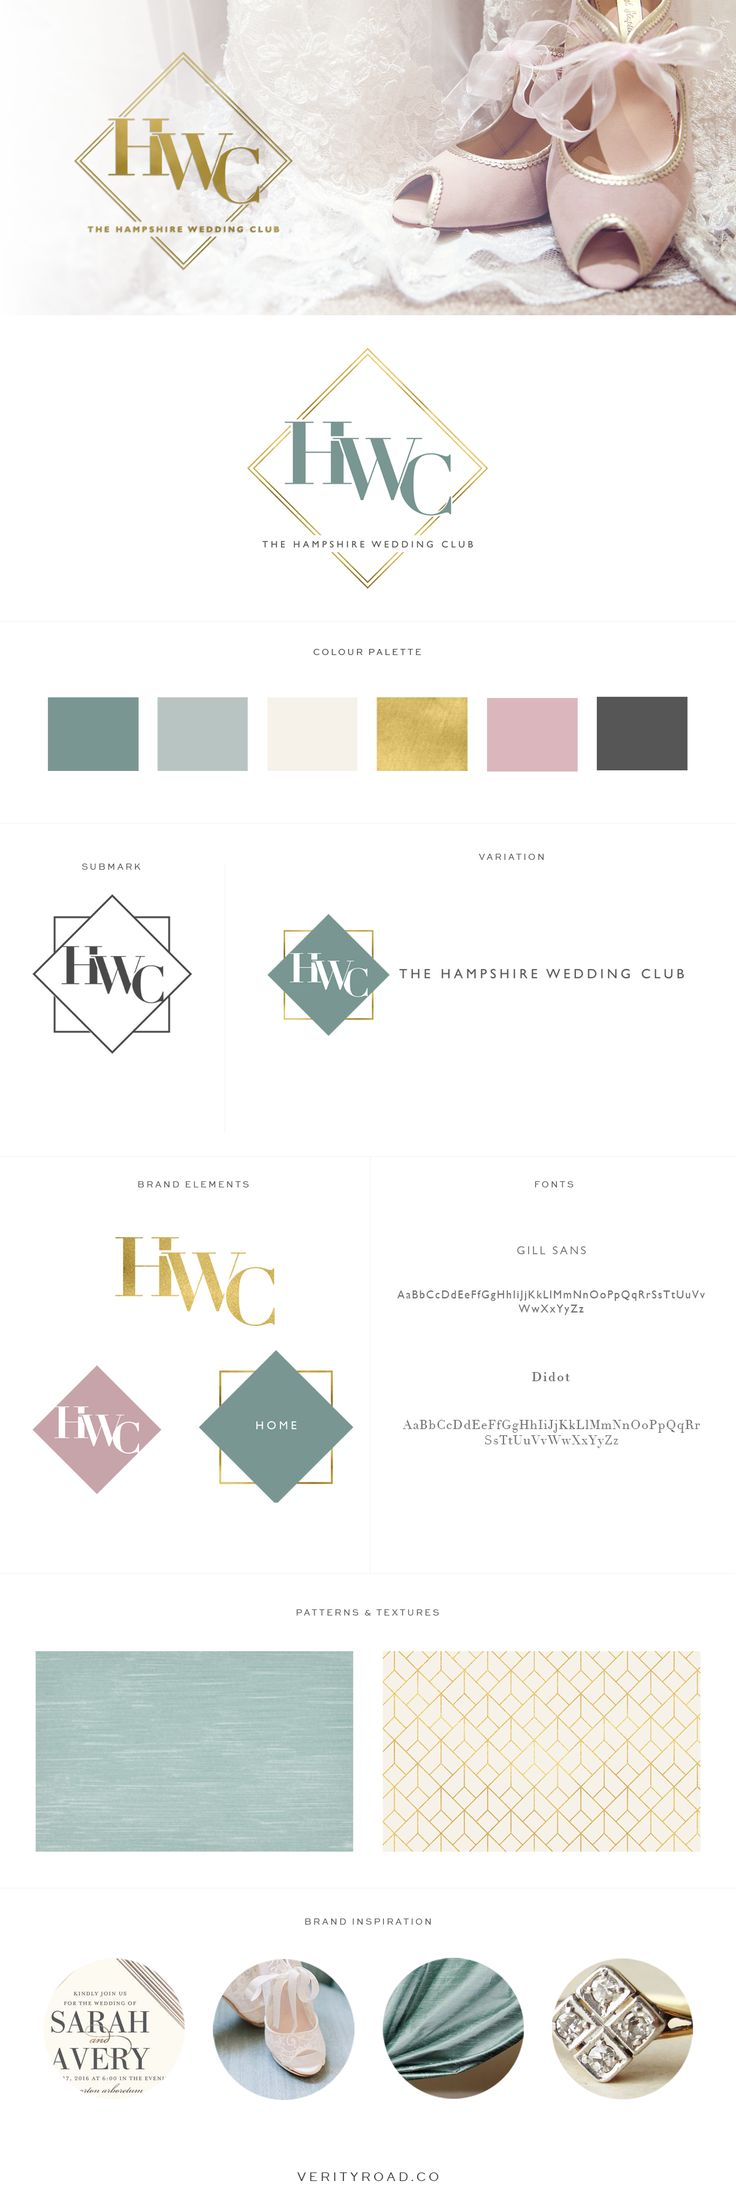 Brand Design - The Hampshire Wedding Club - Brand Style, Social Media Branding